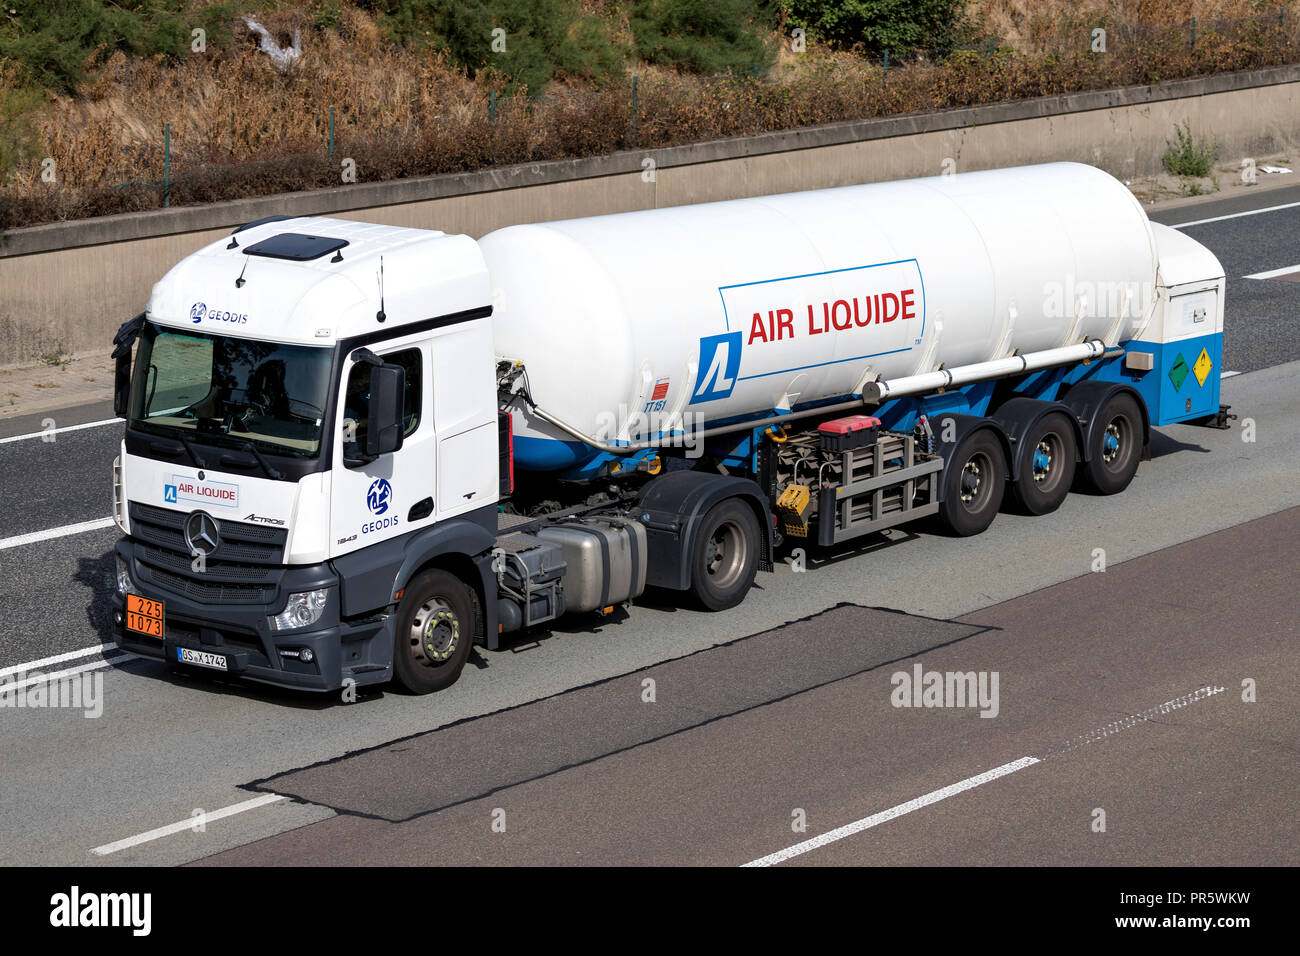 Air Liquide truck on motorway. Air Liquide is a French multinational company which supplies industrial gases and services to various industries. - Stock Image